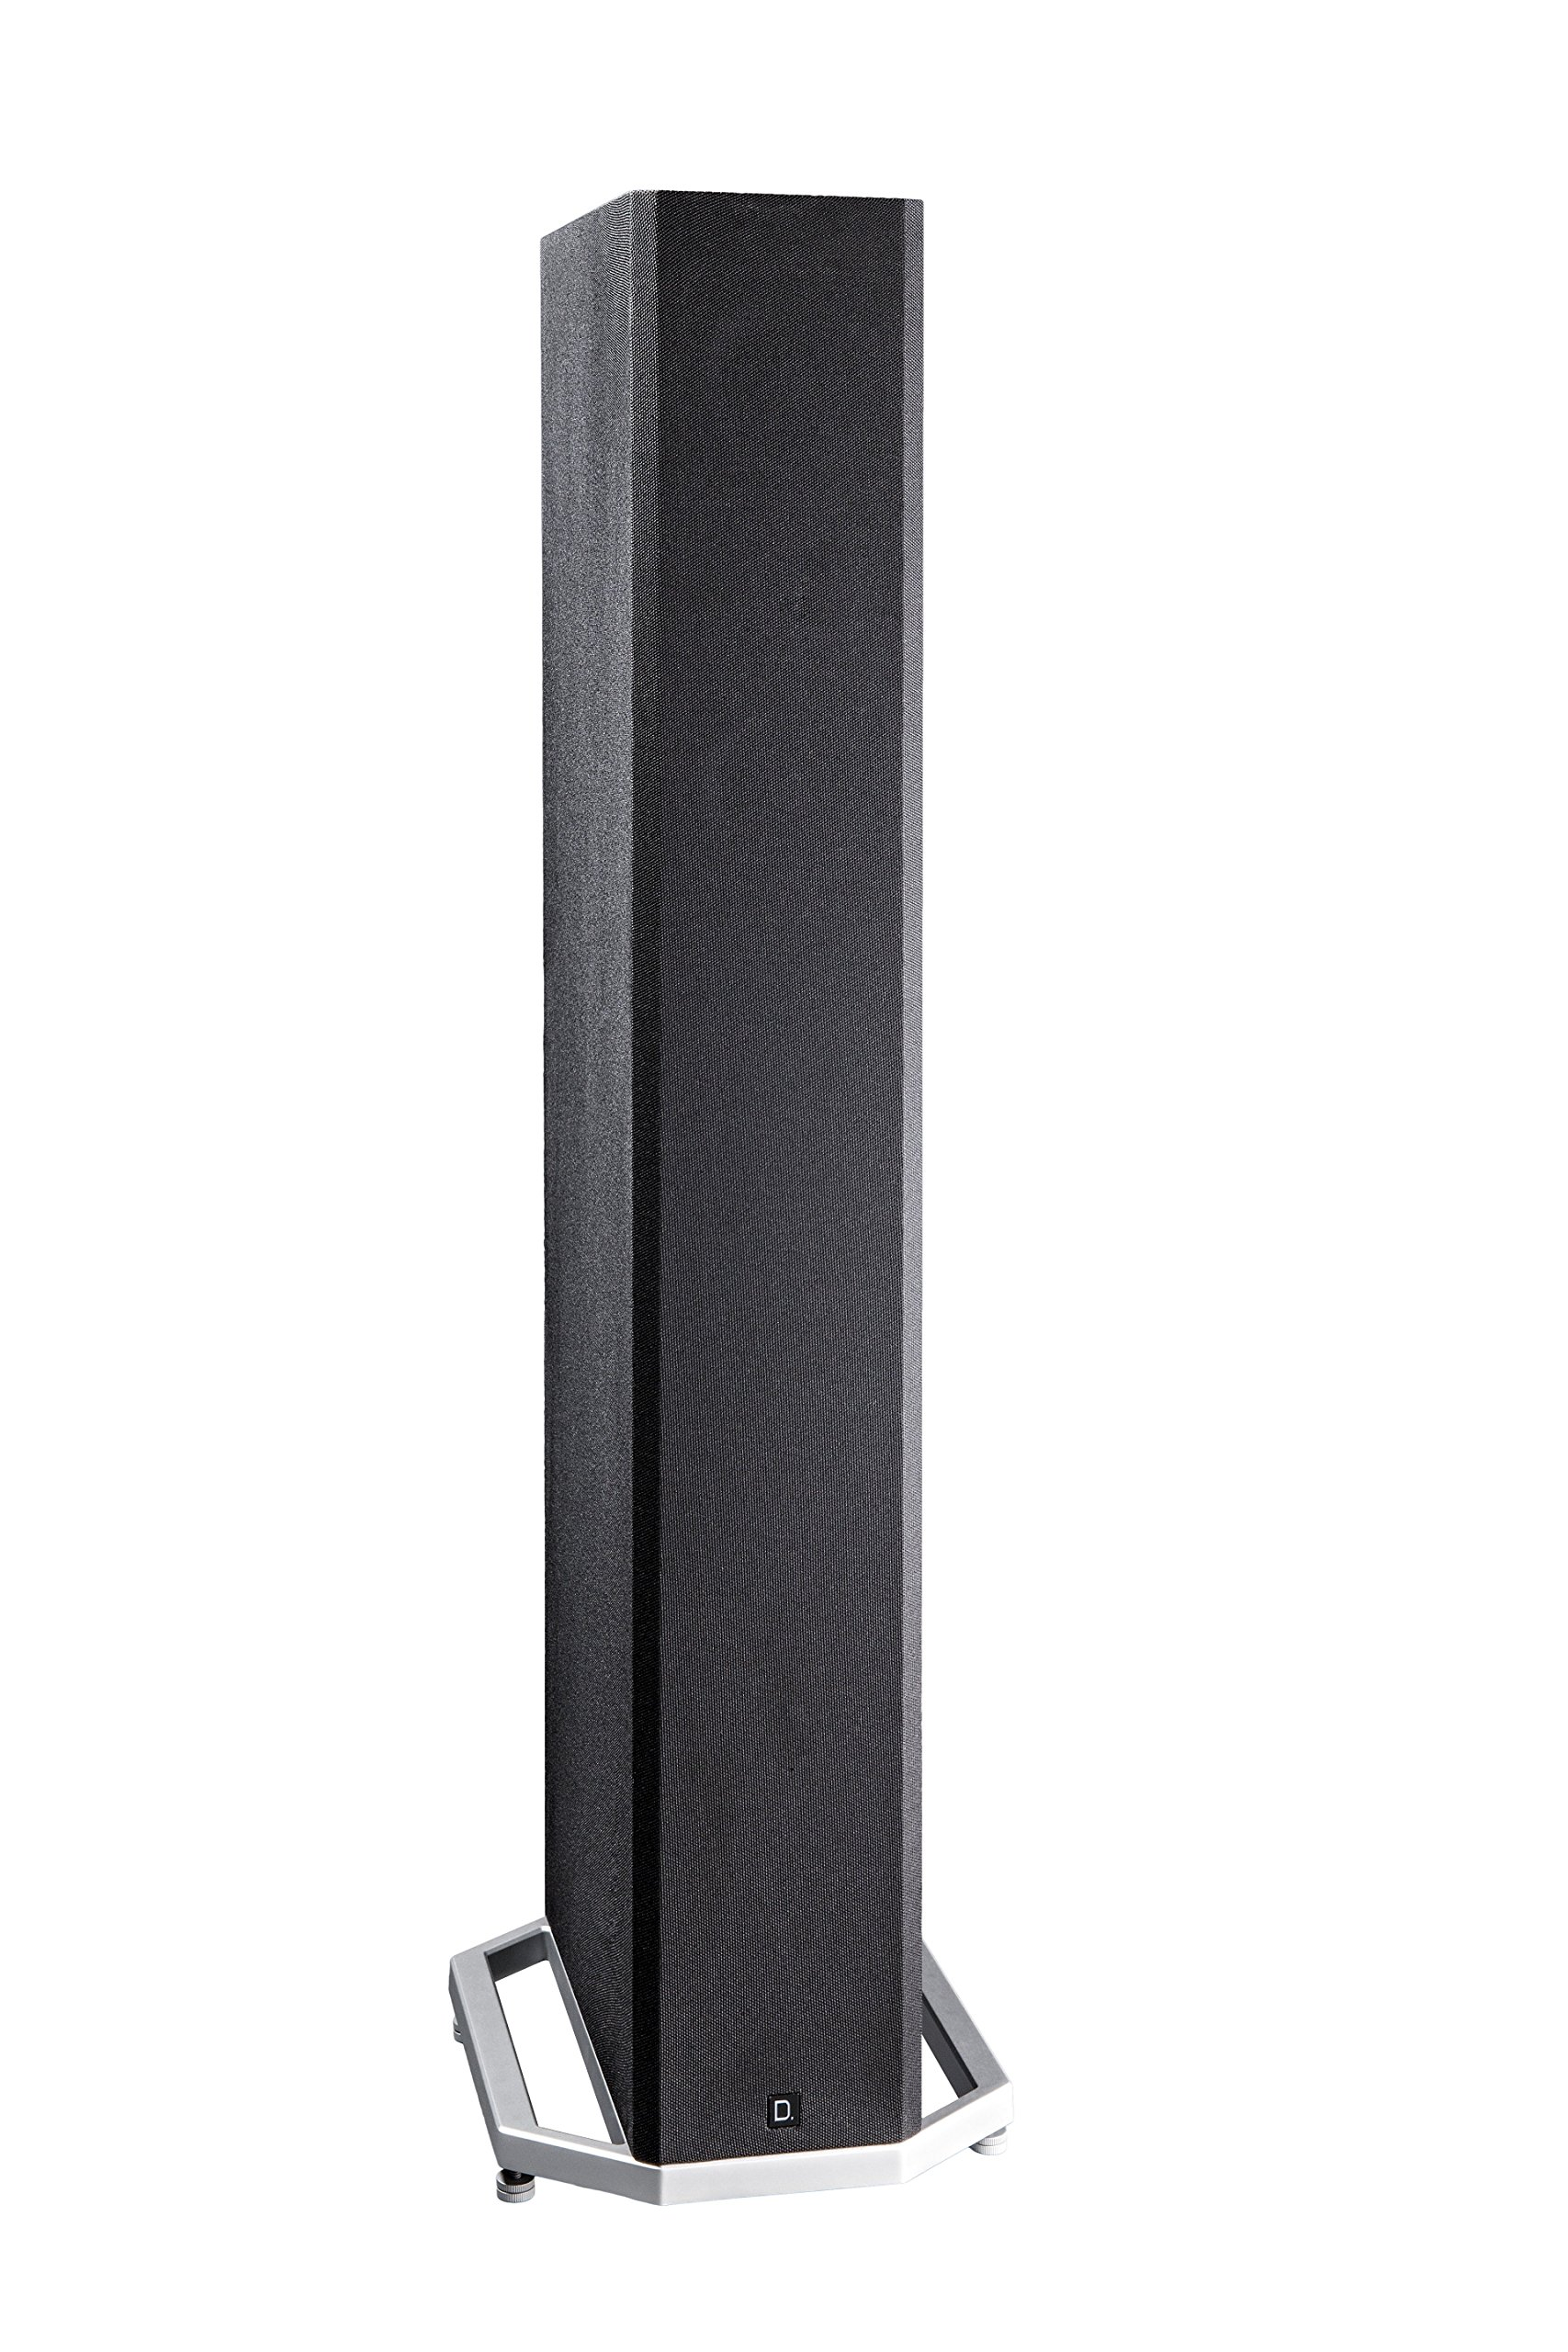 "Definitive Technology BP9040 High-Performance Tower Speaker with Integrated 8"" Powered Subwoofer - (single speaker)"